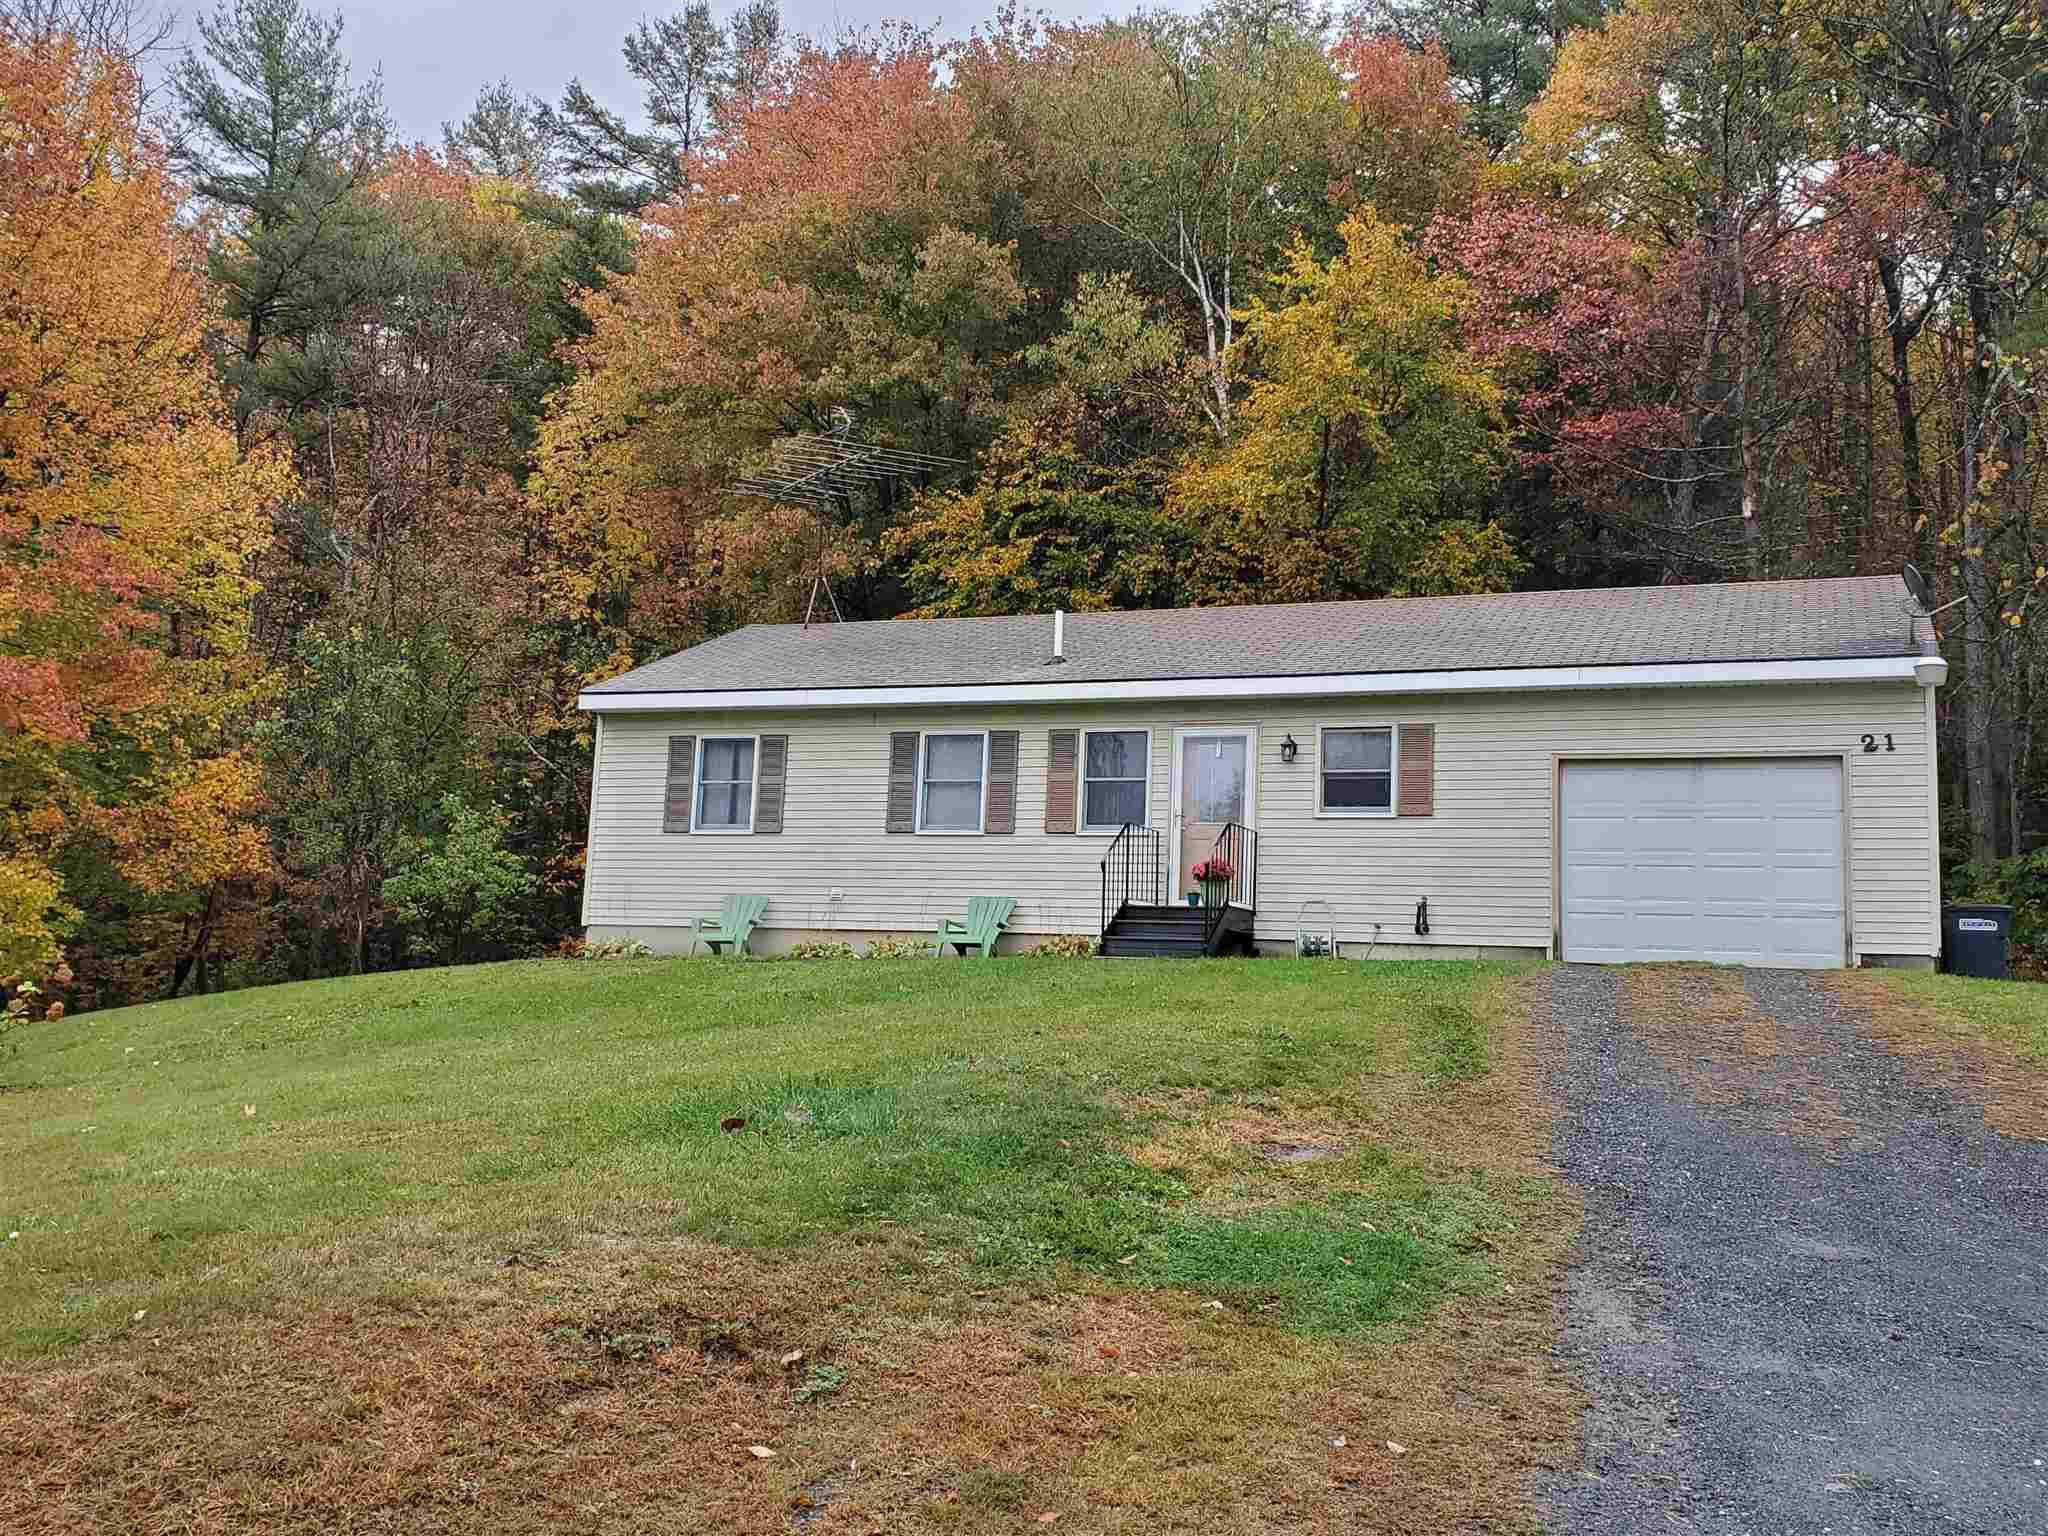 MLS 4832194: 21 Deer Run, Enfield NH